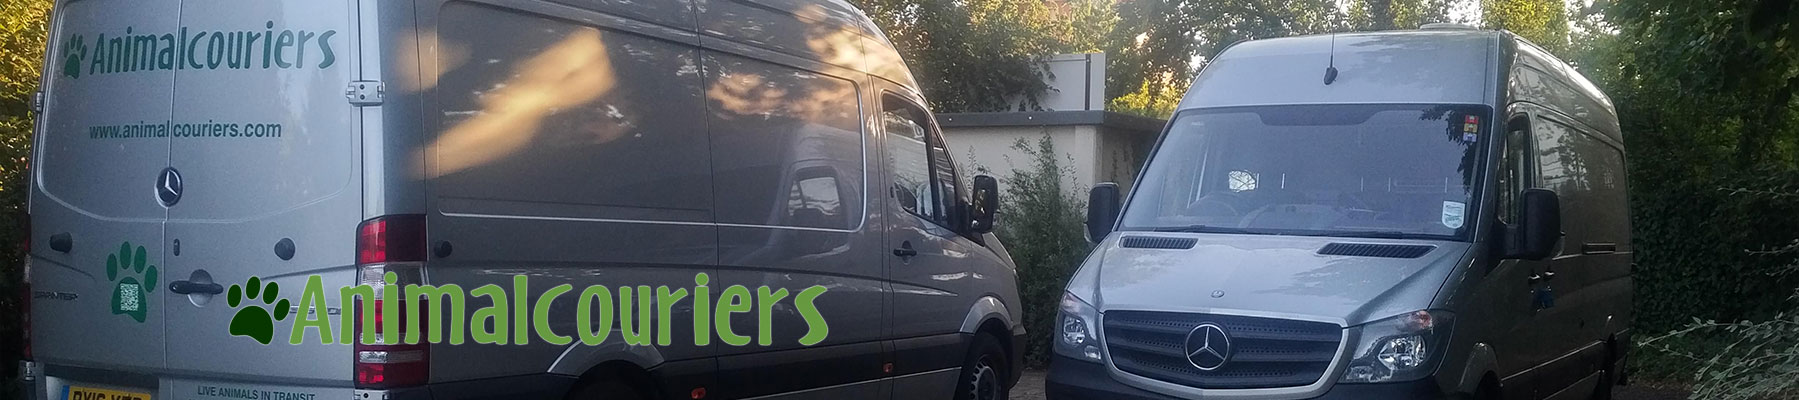 Two Animalcouriers Mercedes Sprinter vans